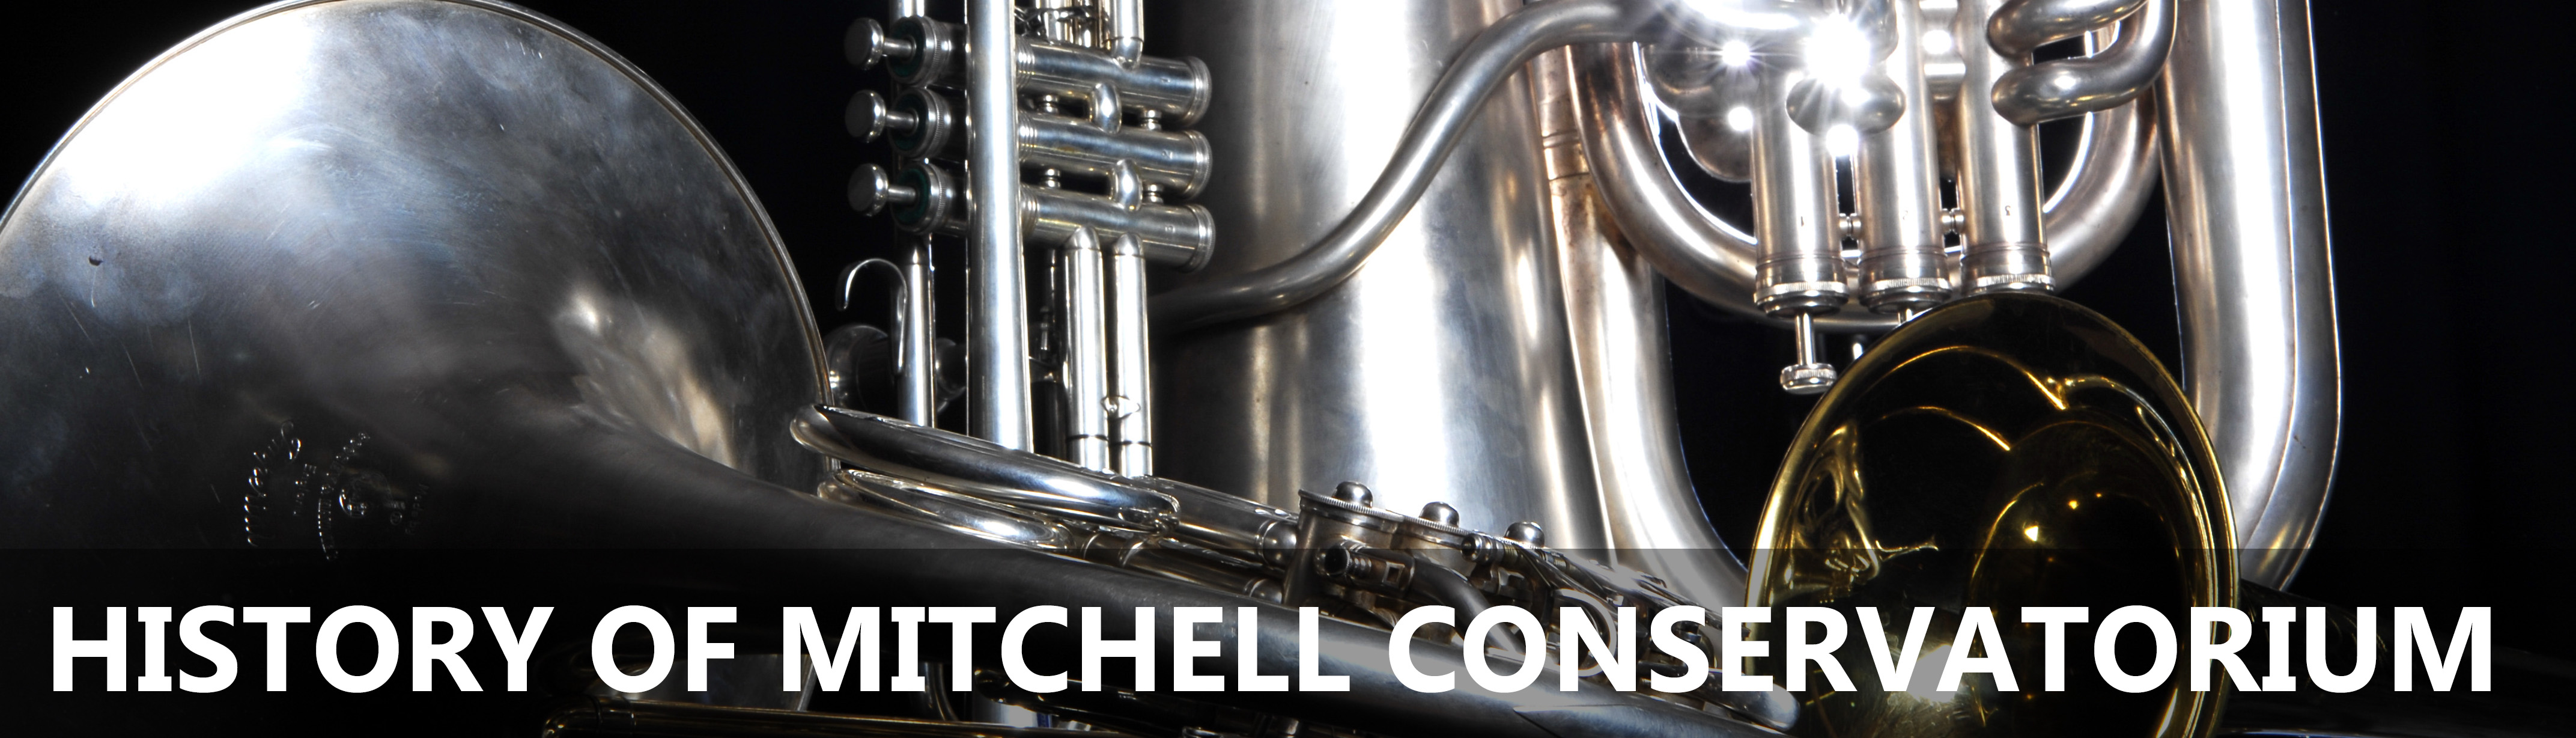 History of Mitchell Conservatorium